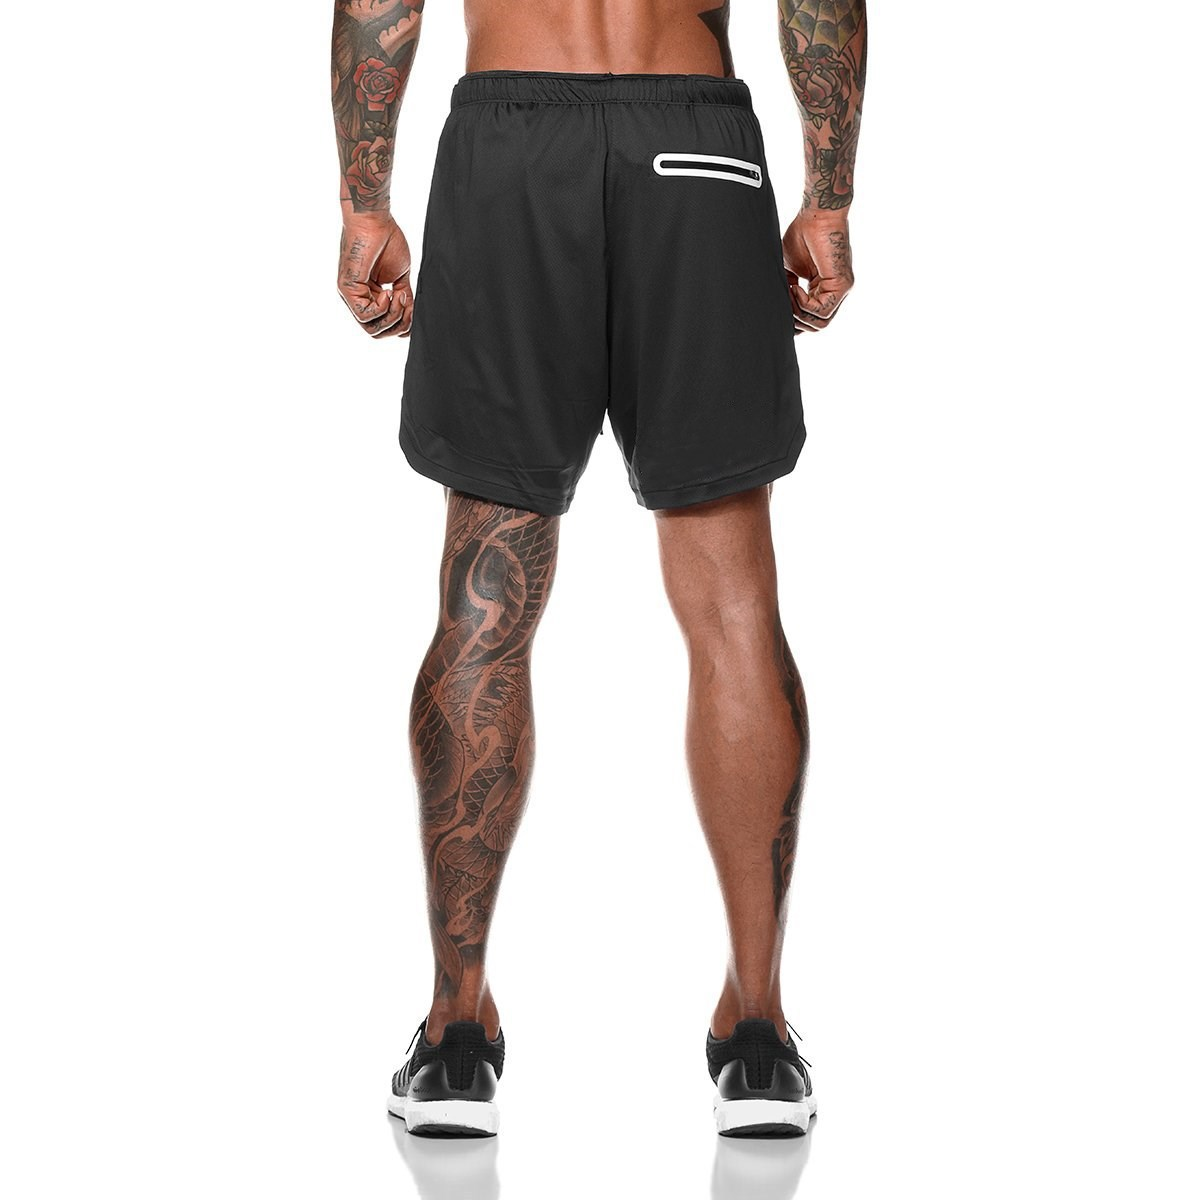 Mens running shorts workout Custom Outfit Training dry fit gym short shorts